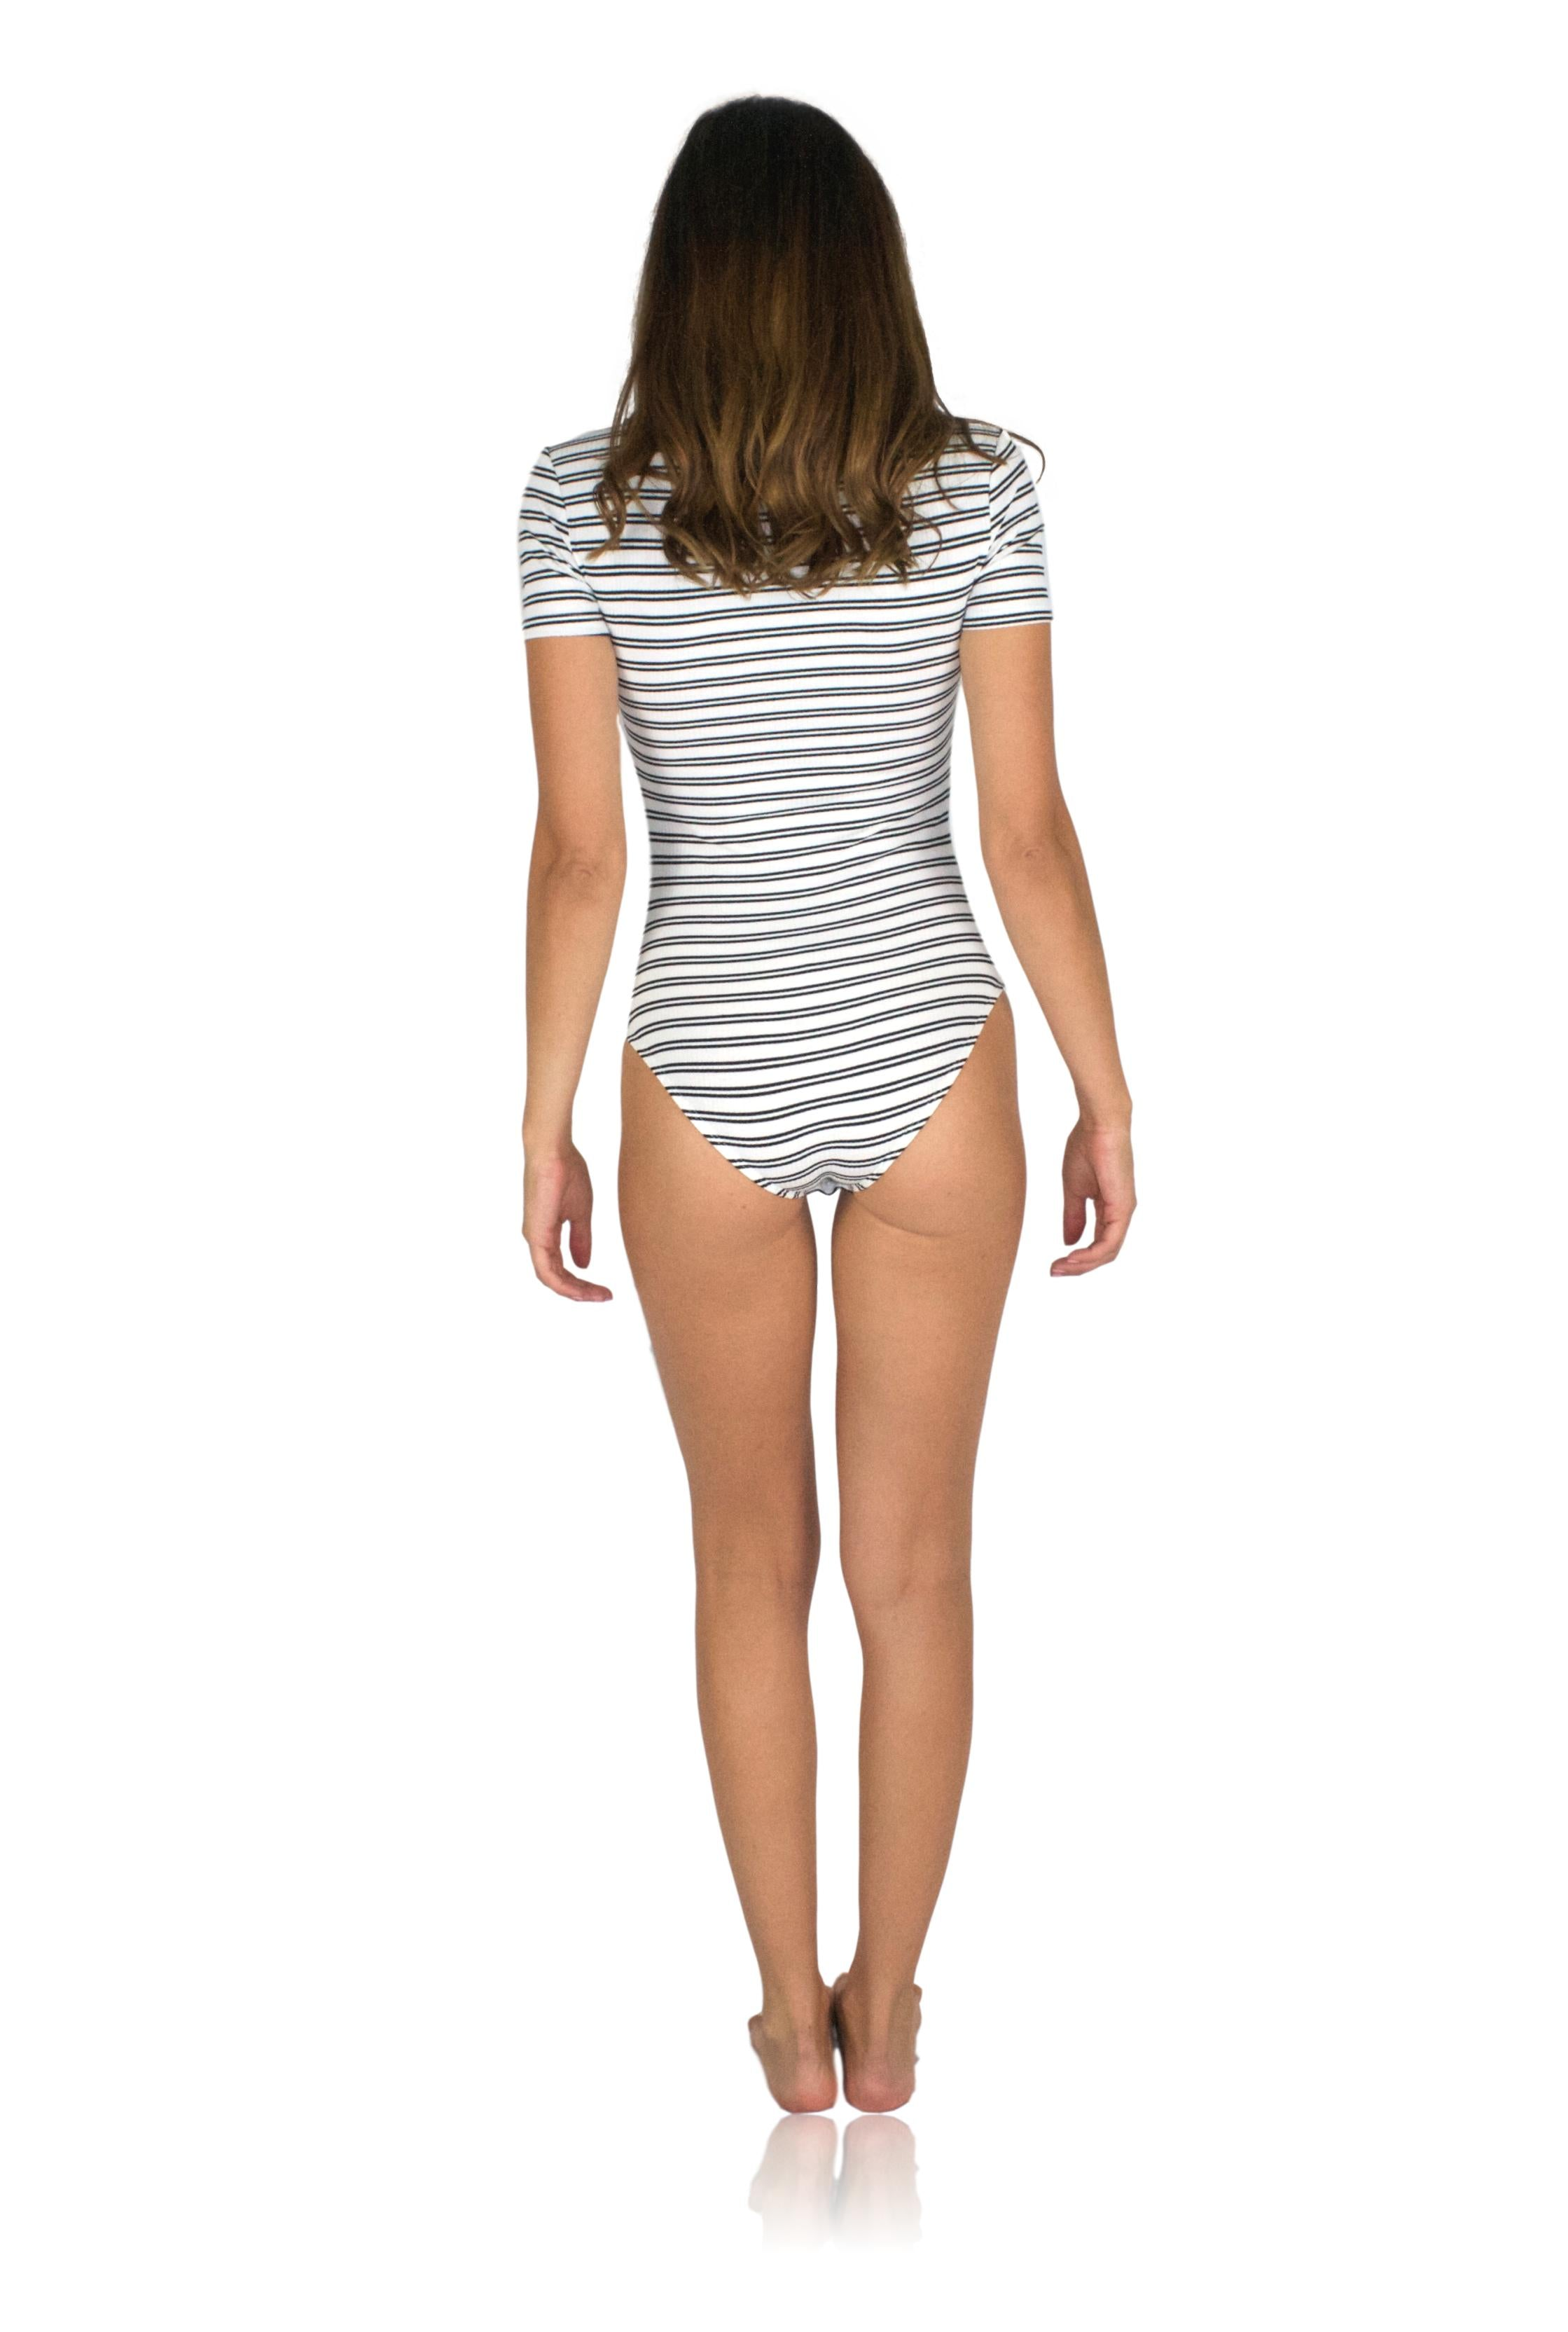 RENDEZ-VOUS BODYSUIT IN BLACK STRIPE